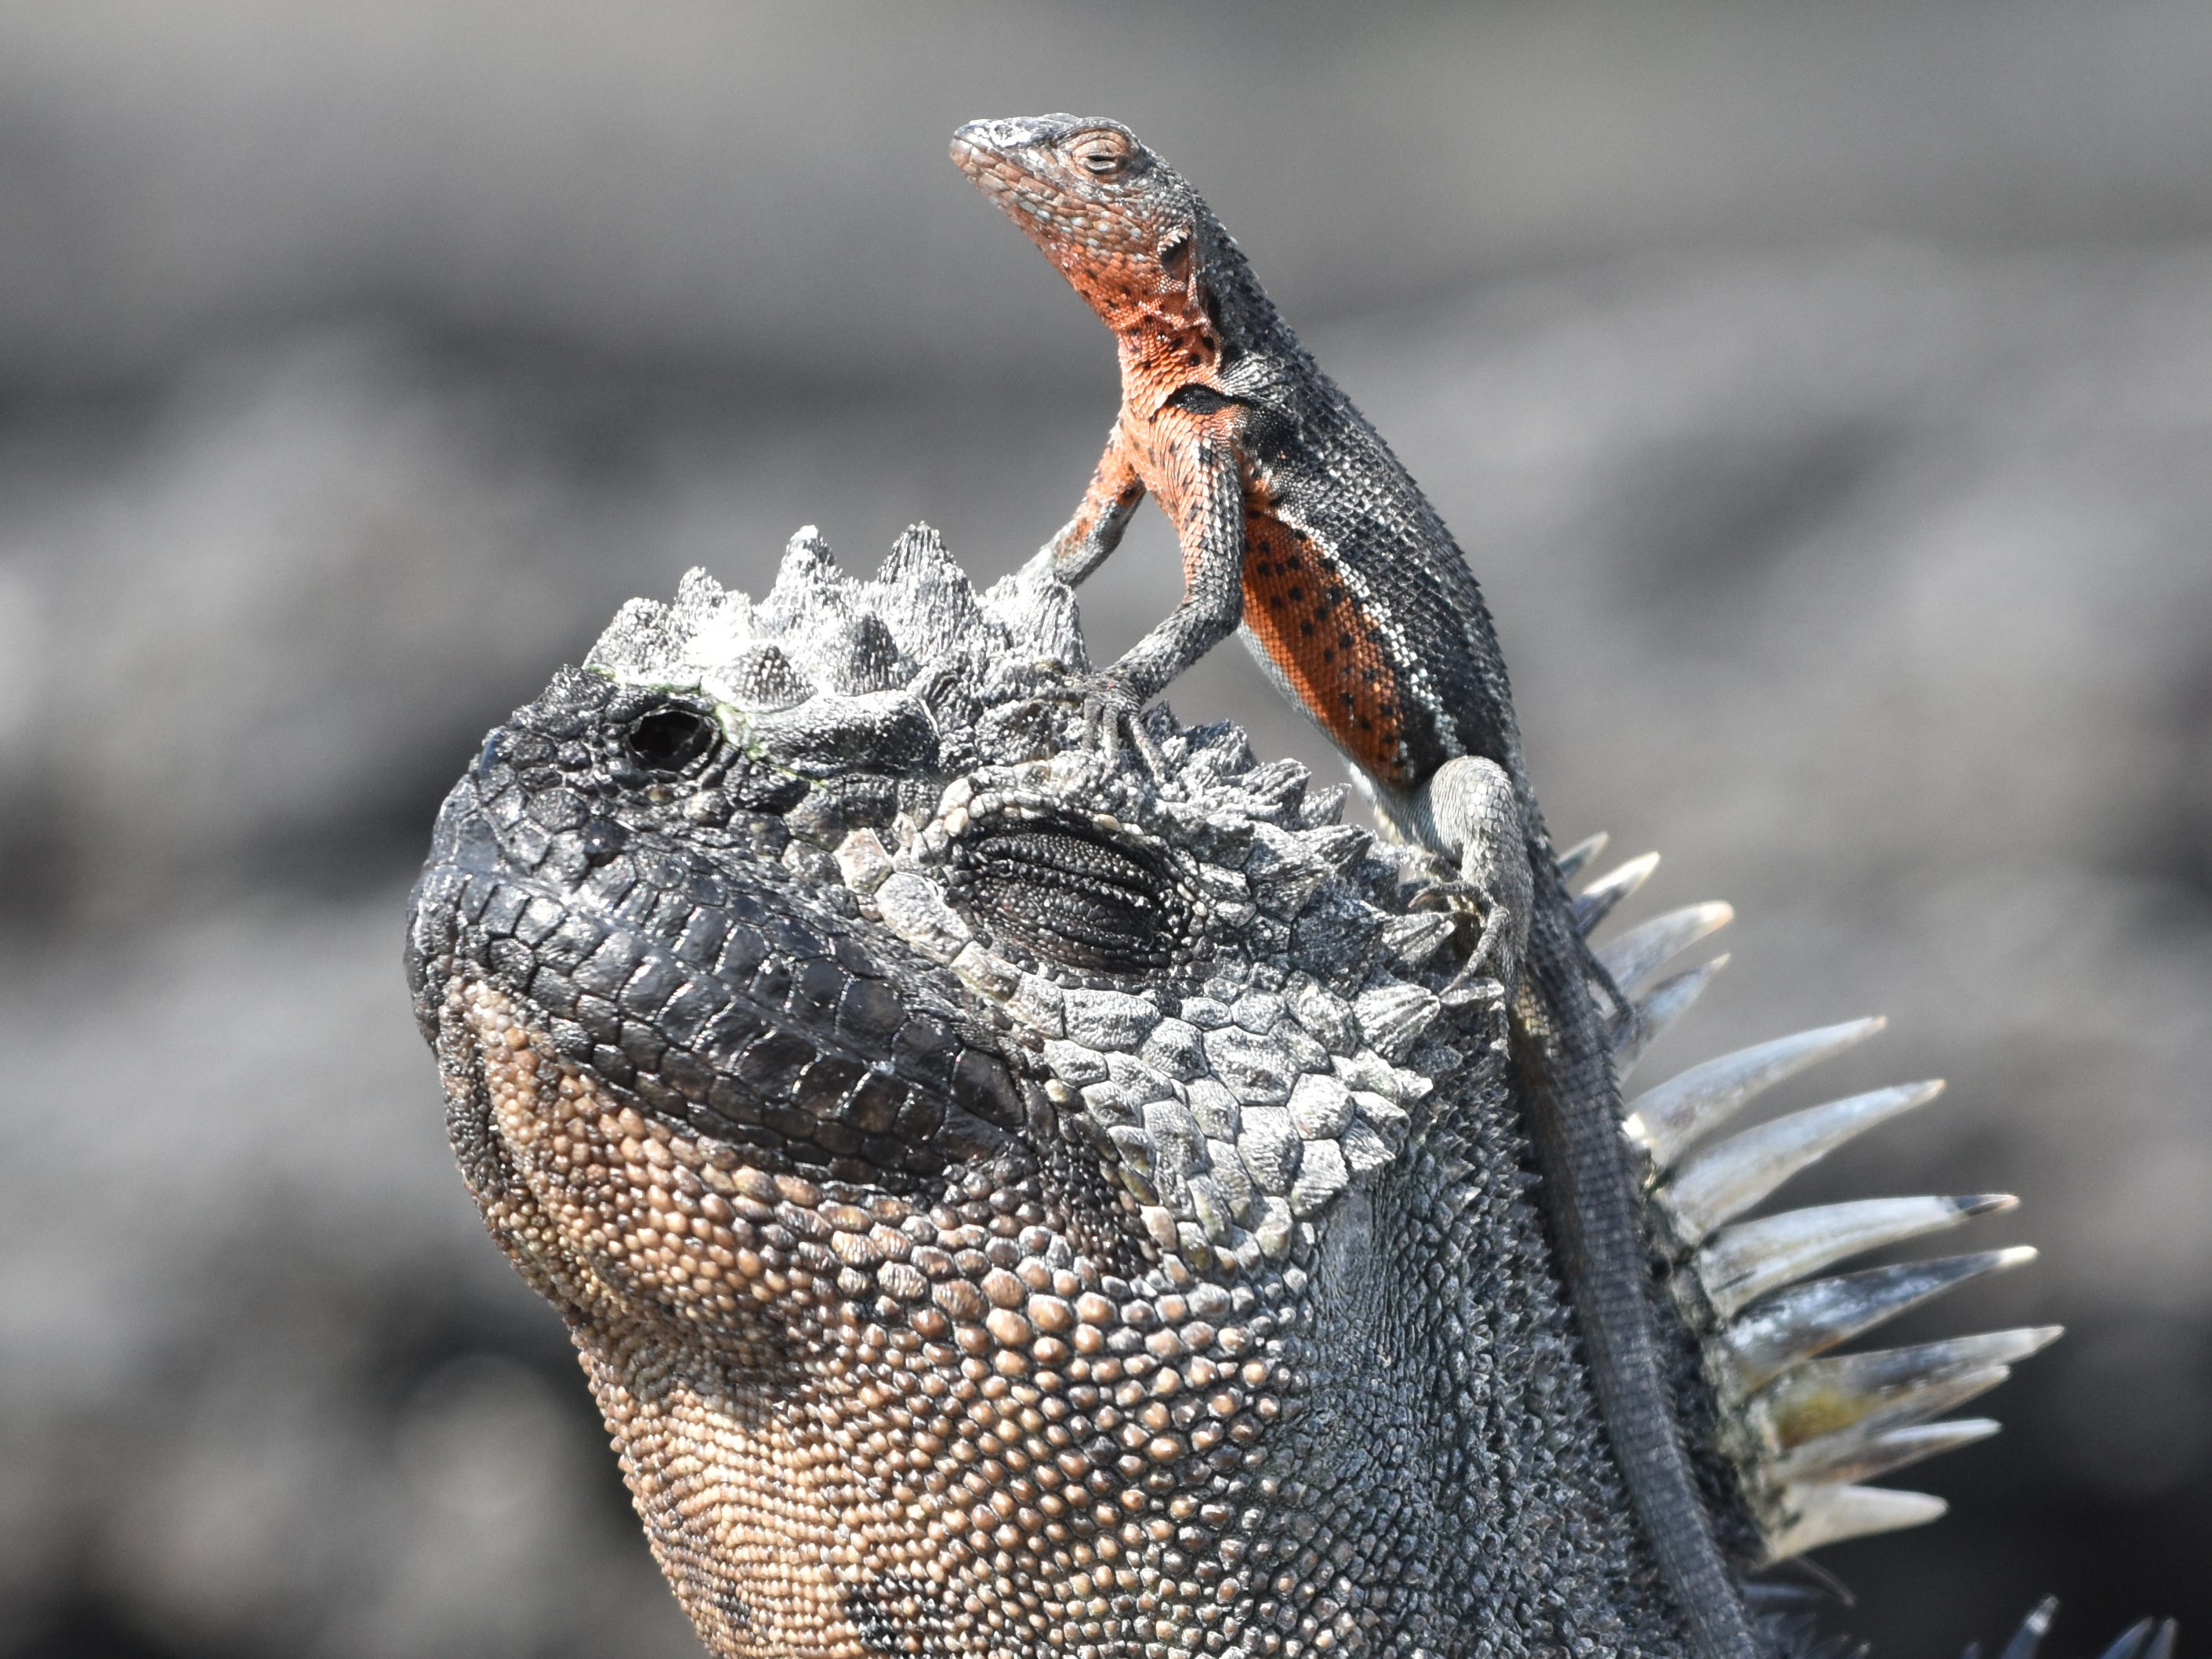 A lava lizard perches on a marine iguana in the Galapagos Islands, Ecuador.